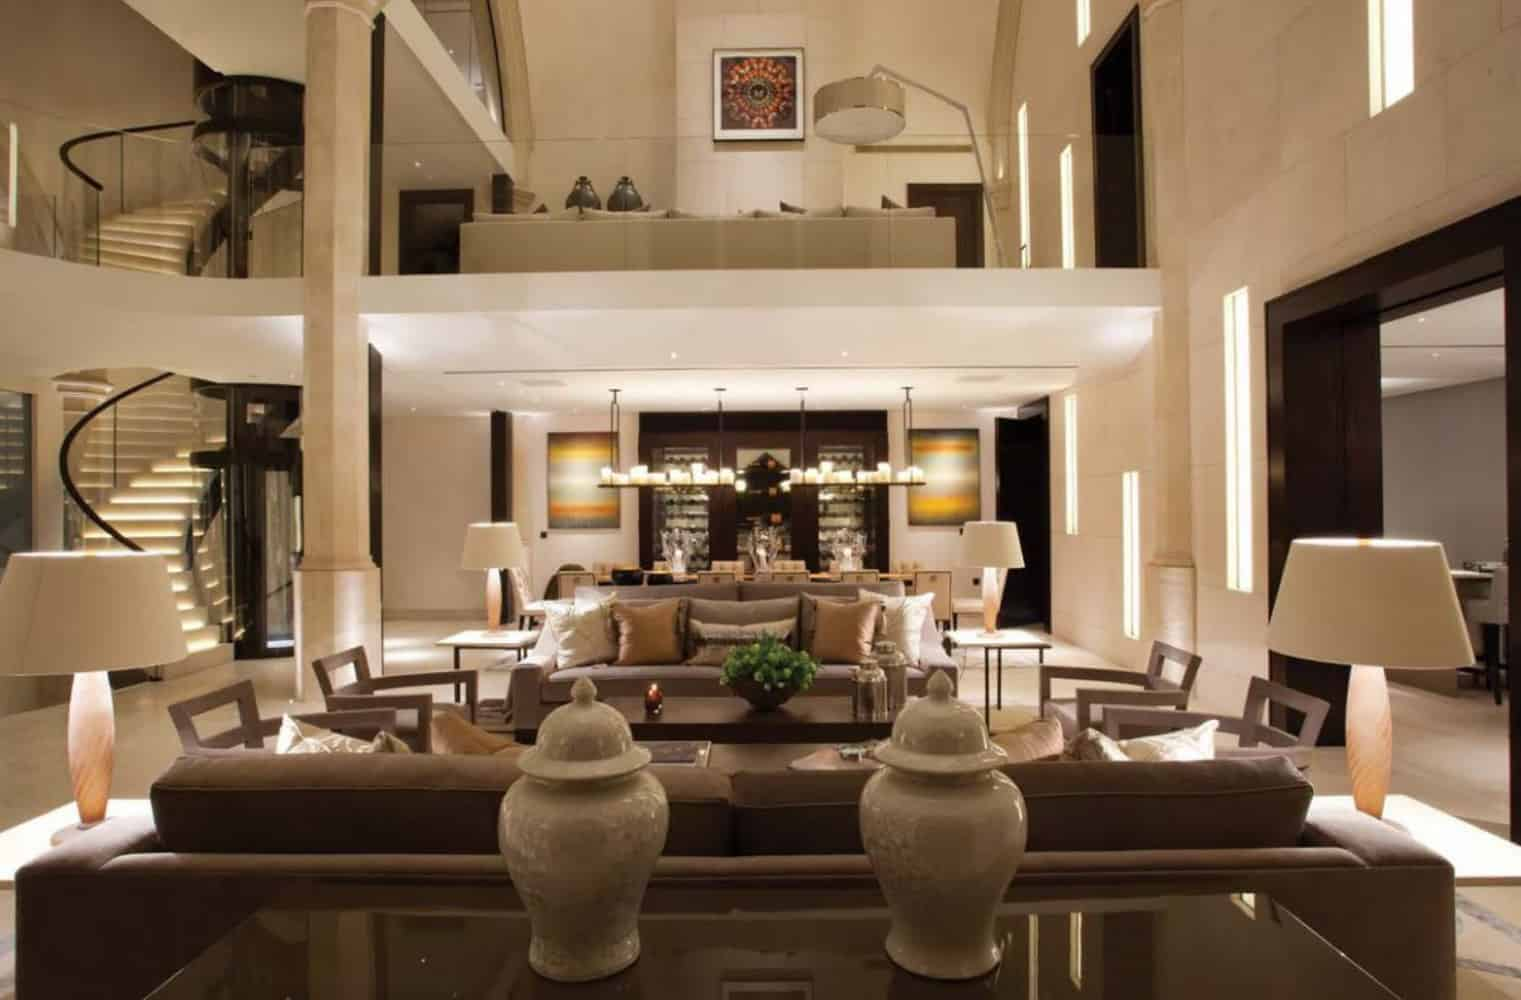 Residential Interior Design Services, Furniture and Art by FORBELI HOME, London UK